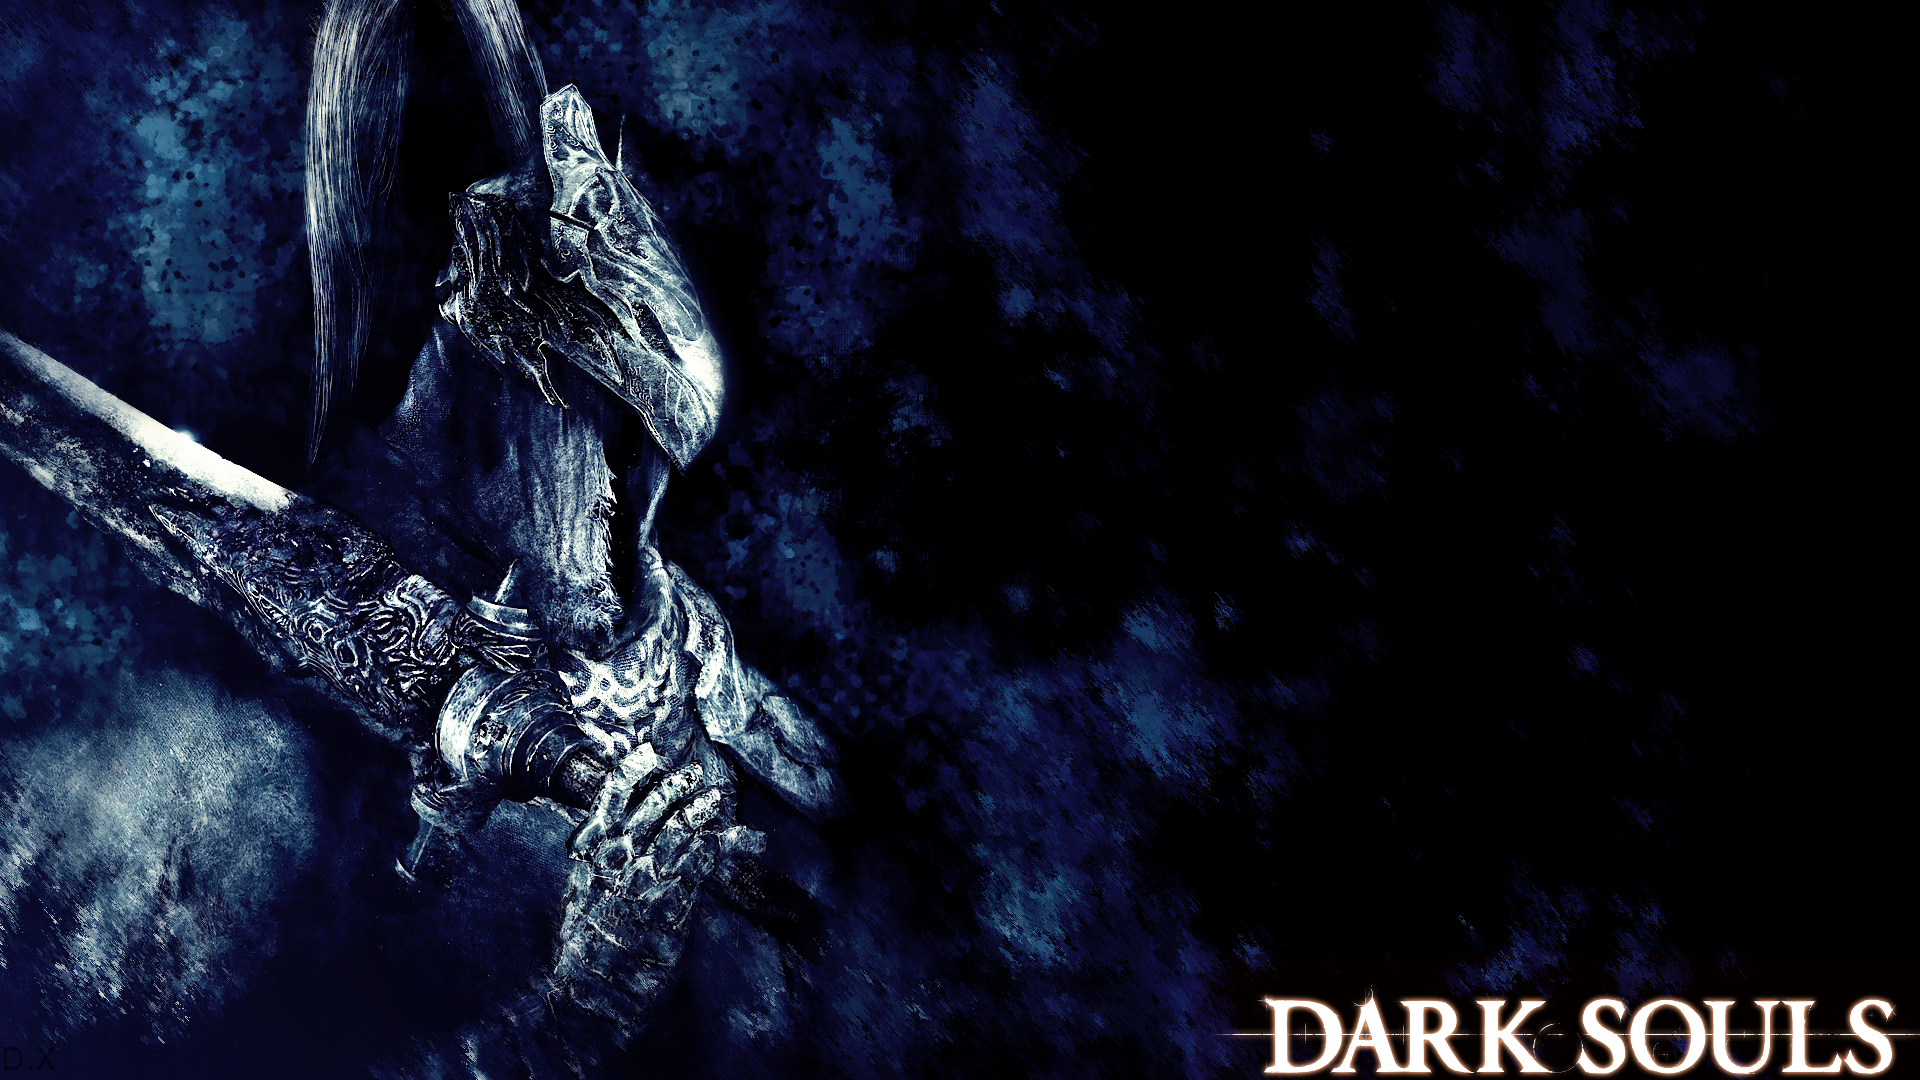 Free Download Dark Souls Artorias Wallpaper By Dragunowx On